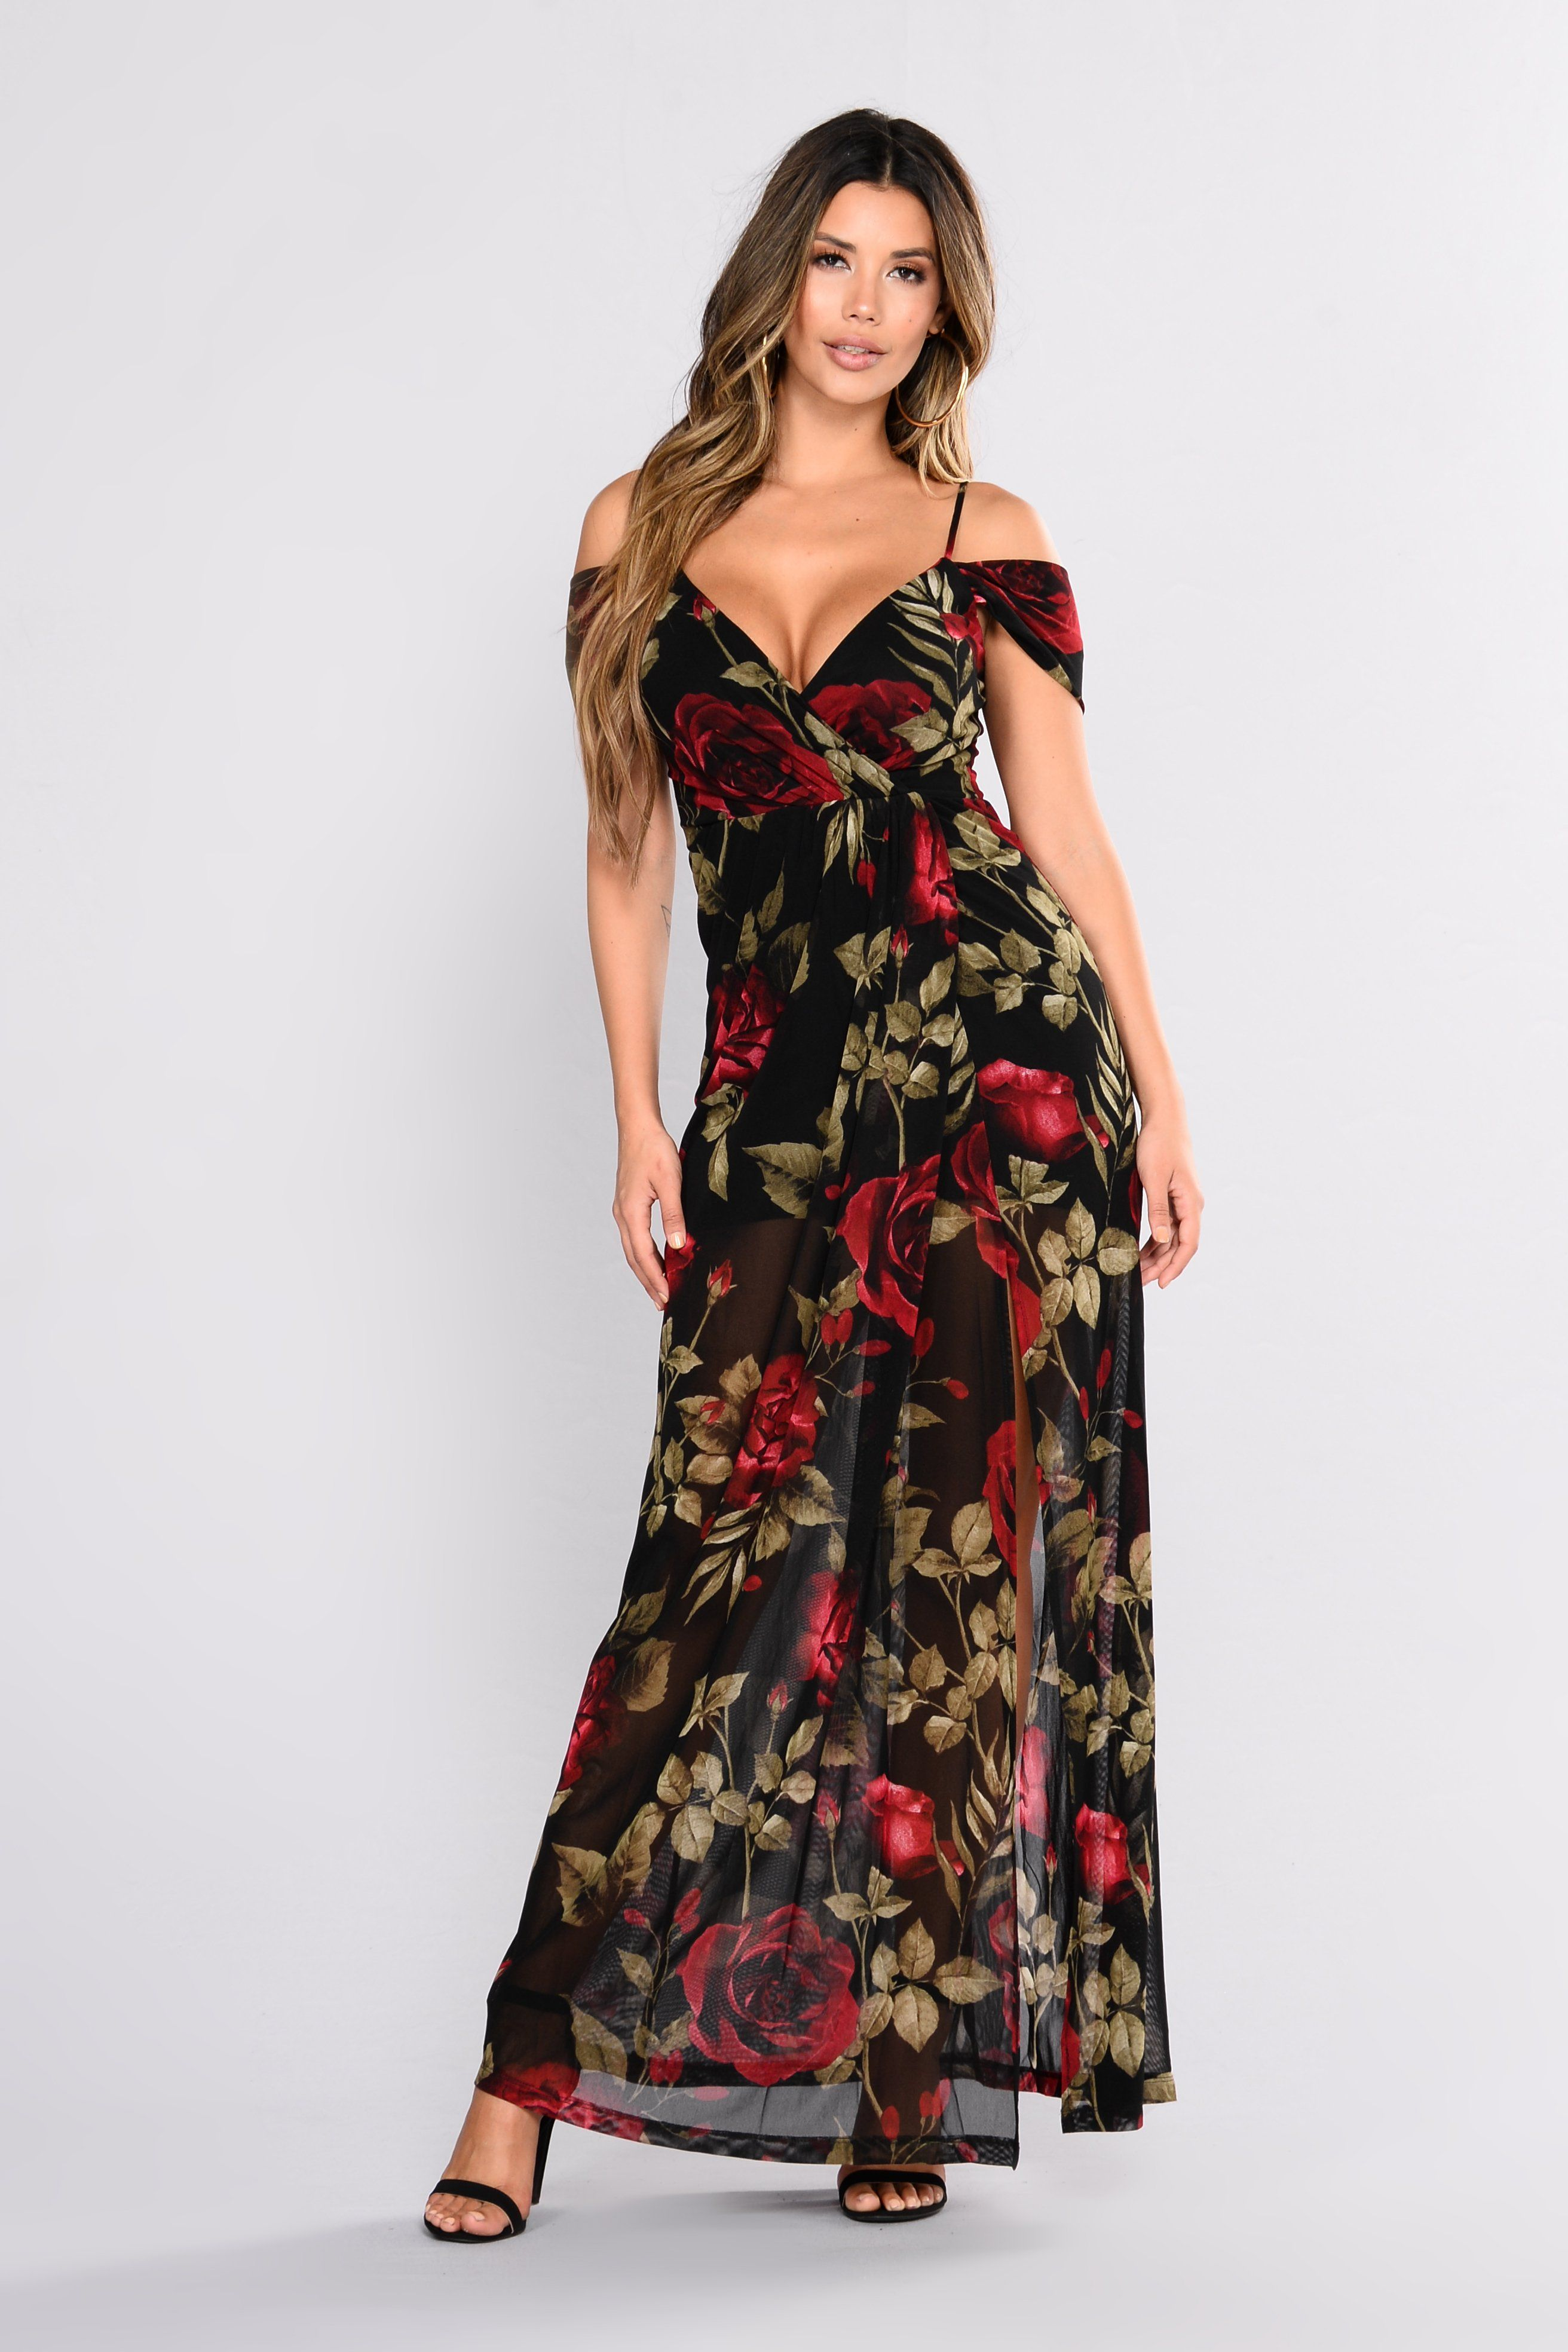 c20a607353 Ultimate Romance Floral Dress - Black Red